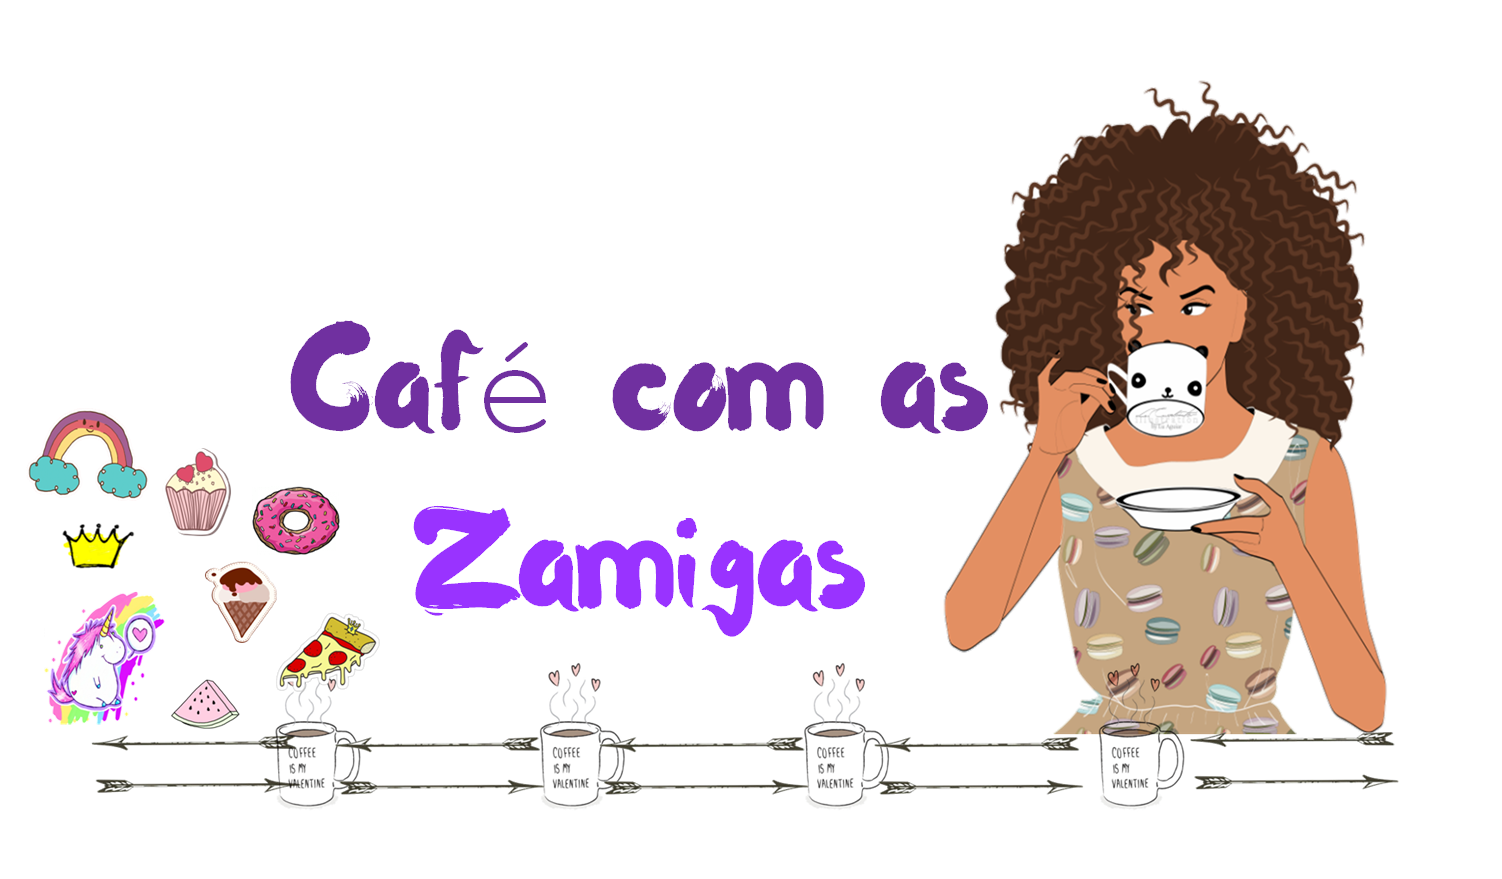 Café com as Zamigas